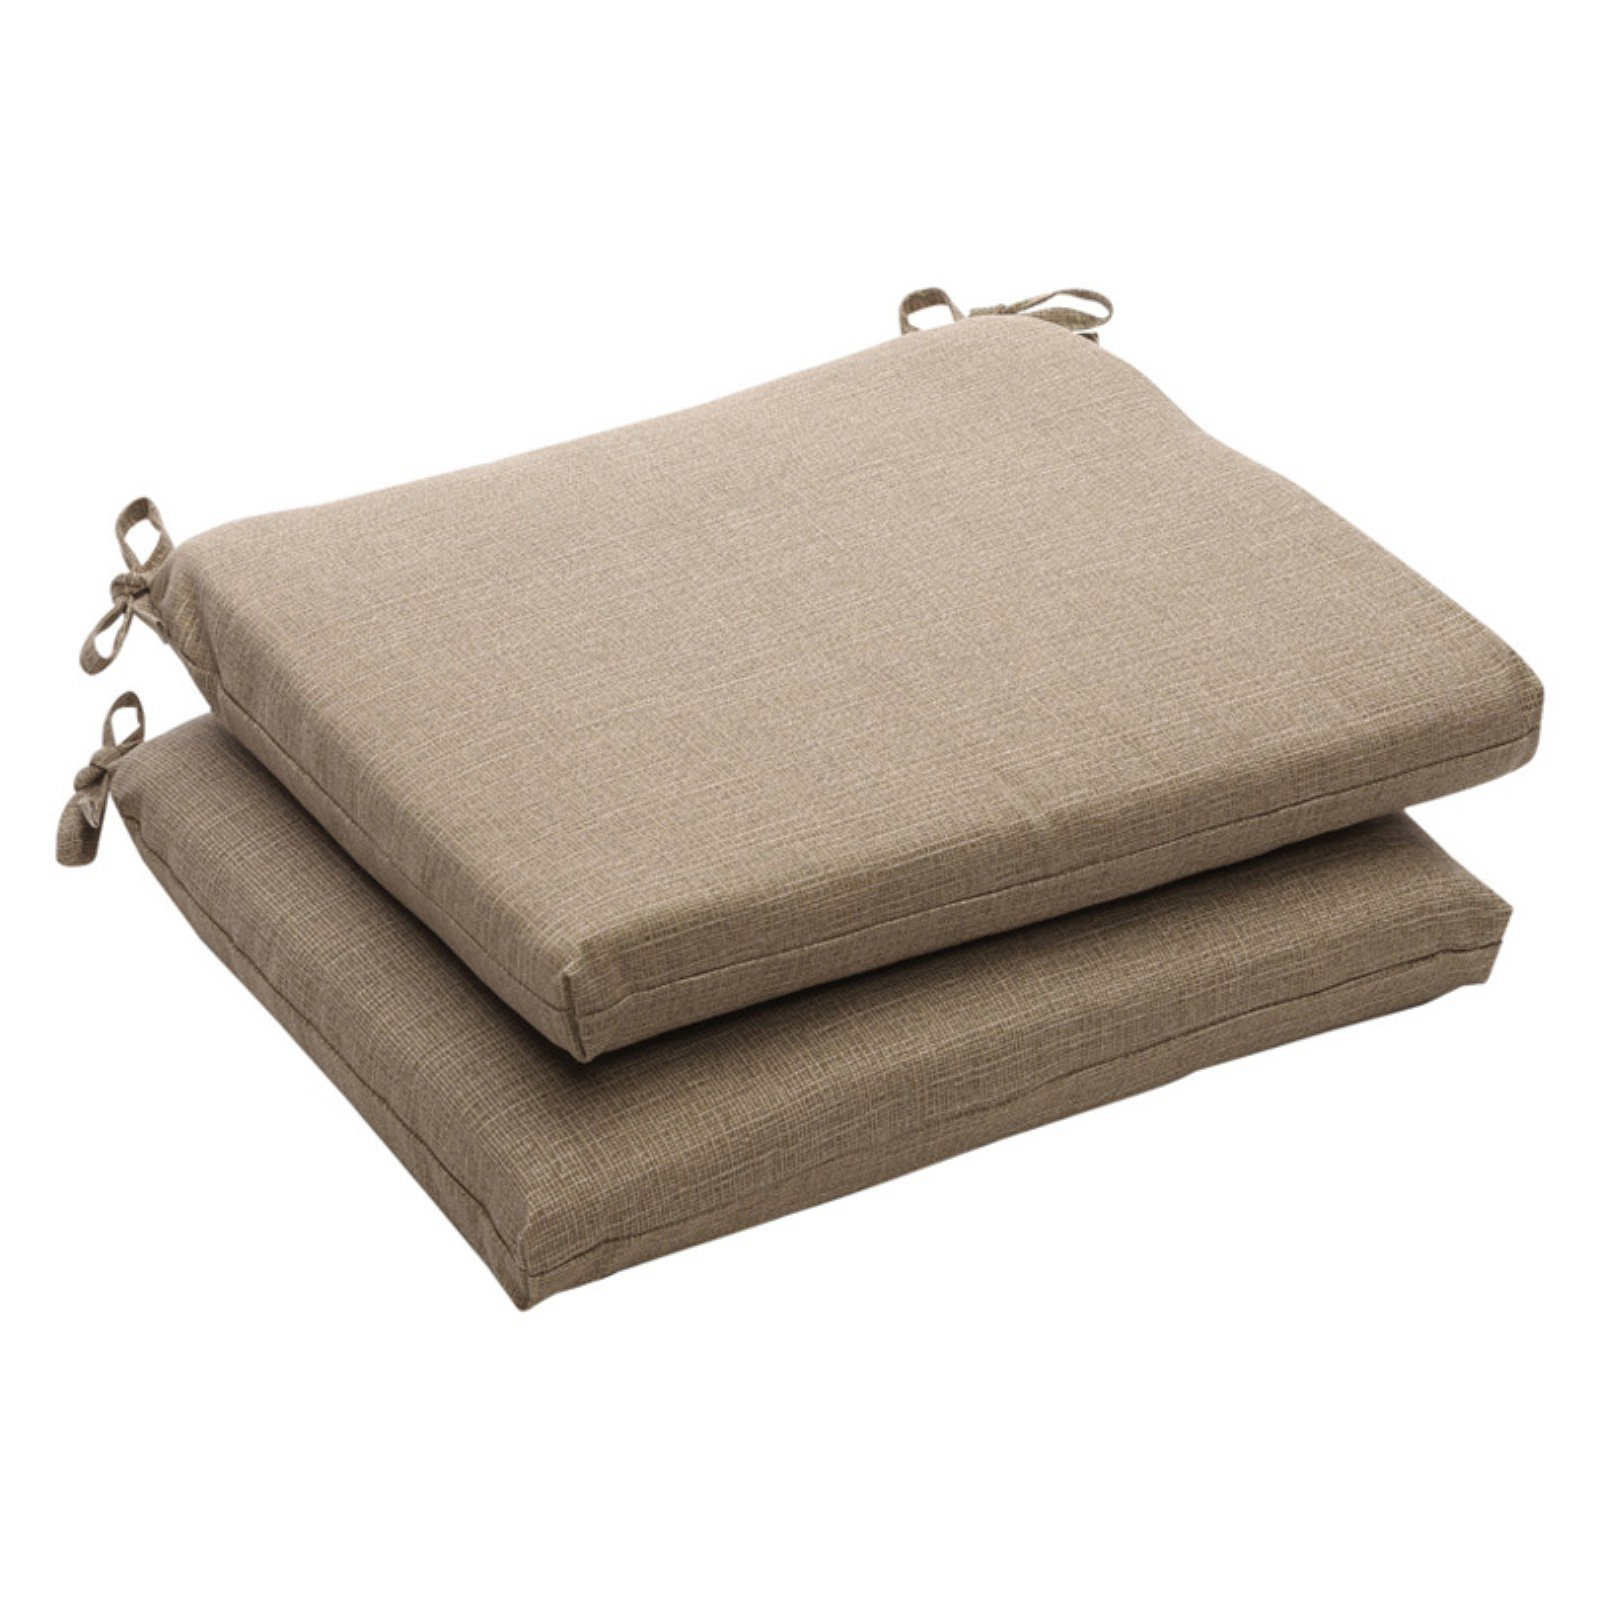 Pillow Perfect Outdoor Textured Solid Seat Cushion - 18.5 x 16 x 3 in. -